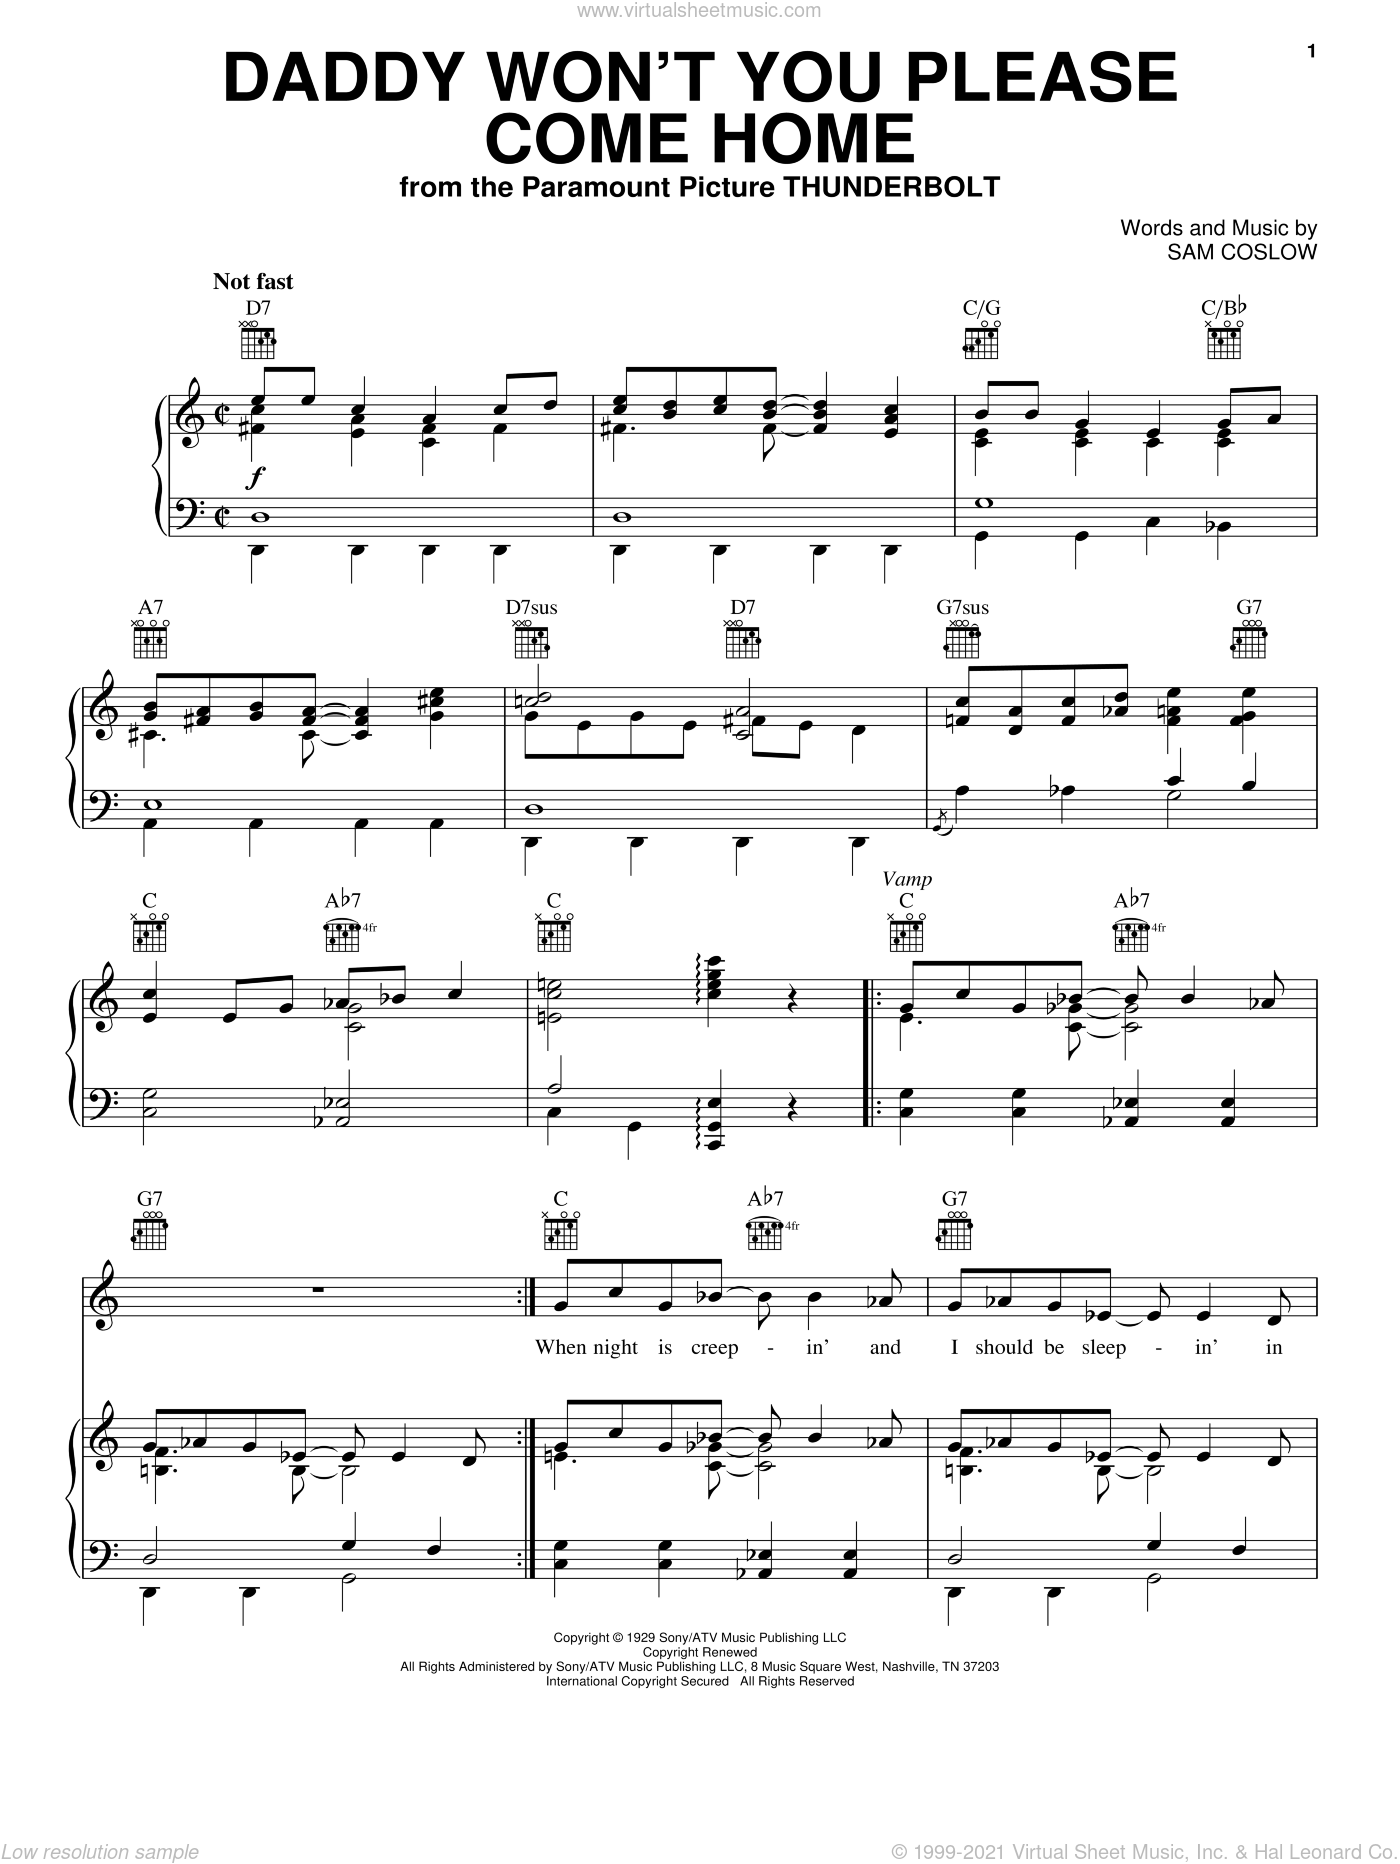 Daddy Won't You Please Come Home sheet music for voice, piano or guitar by Sam Coslow